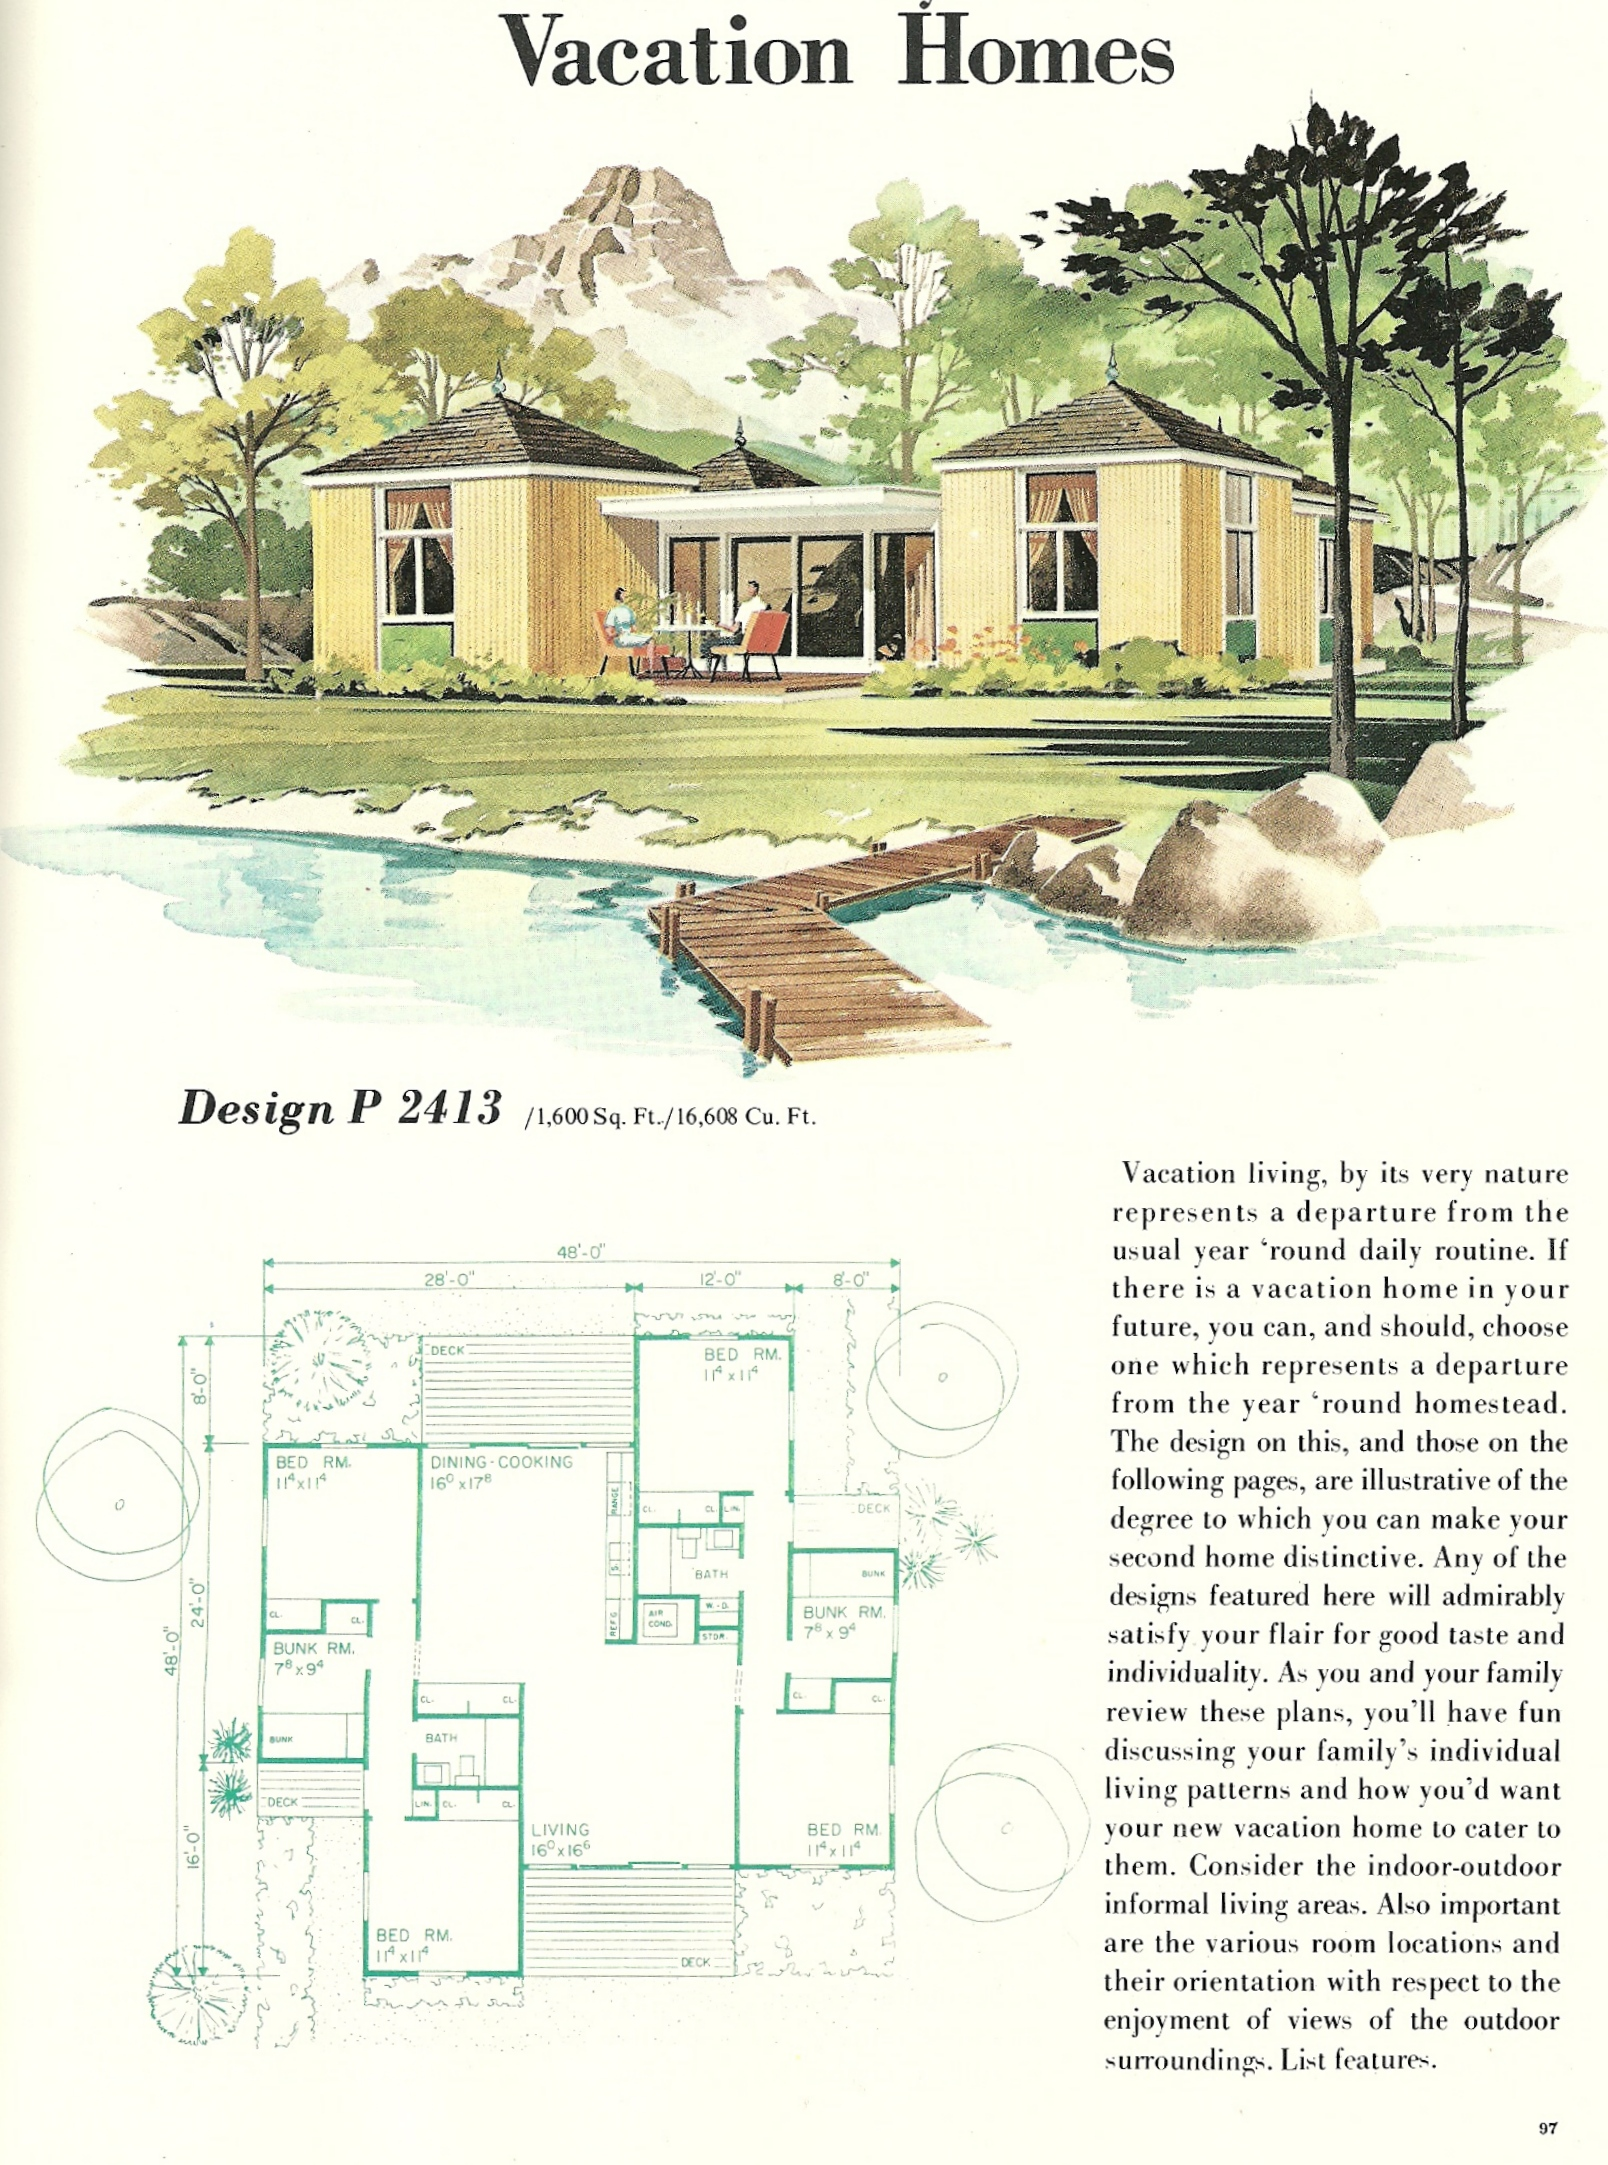 Vintage vacation home plans 2413 antique alter ego for 1960 house plans